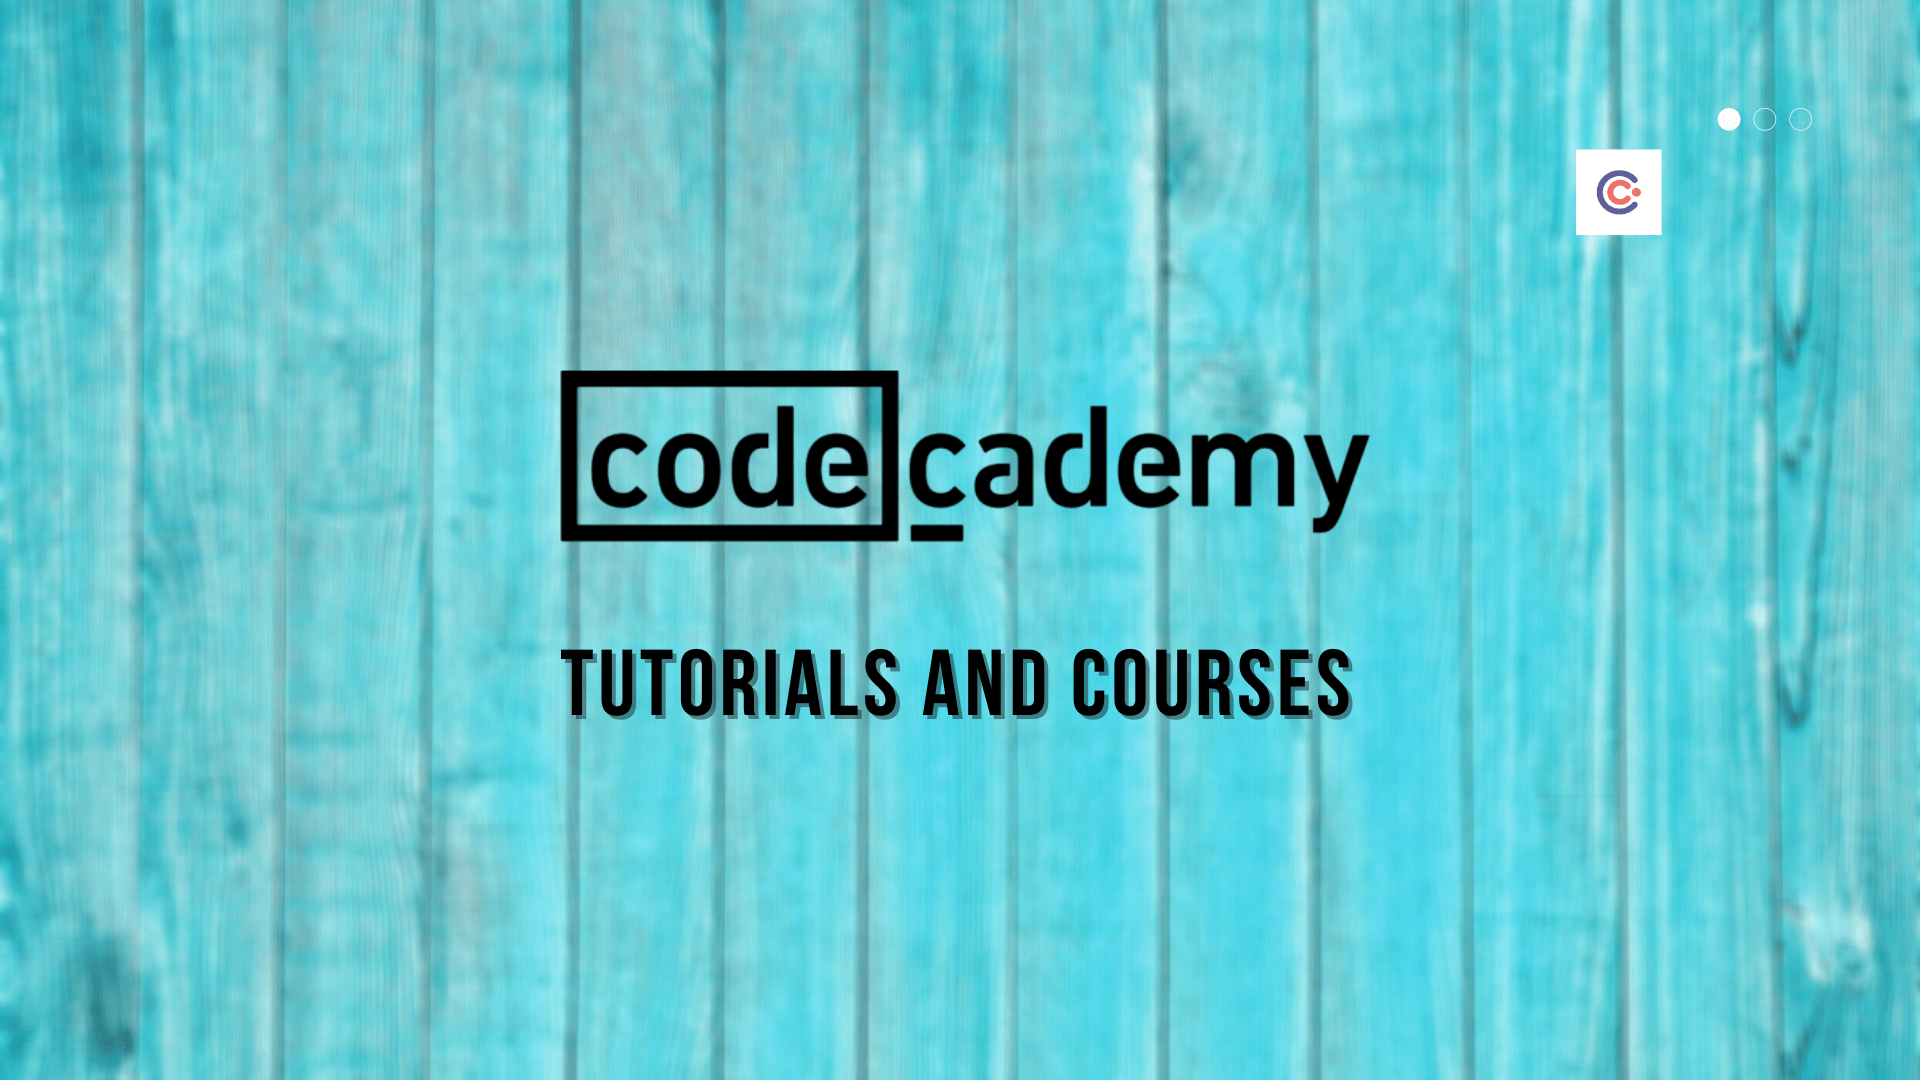 10 Best Codecademy Courses and Certifications